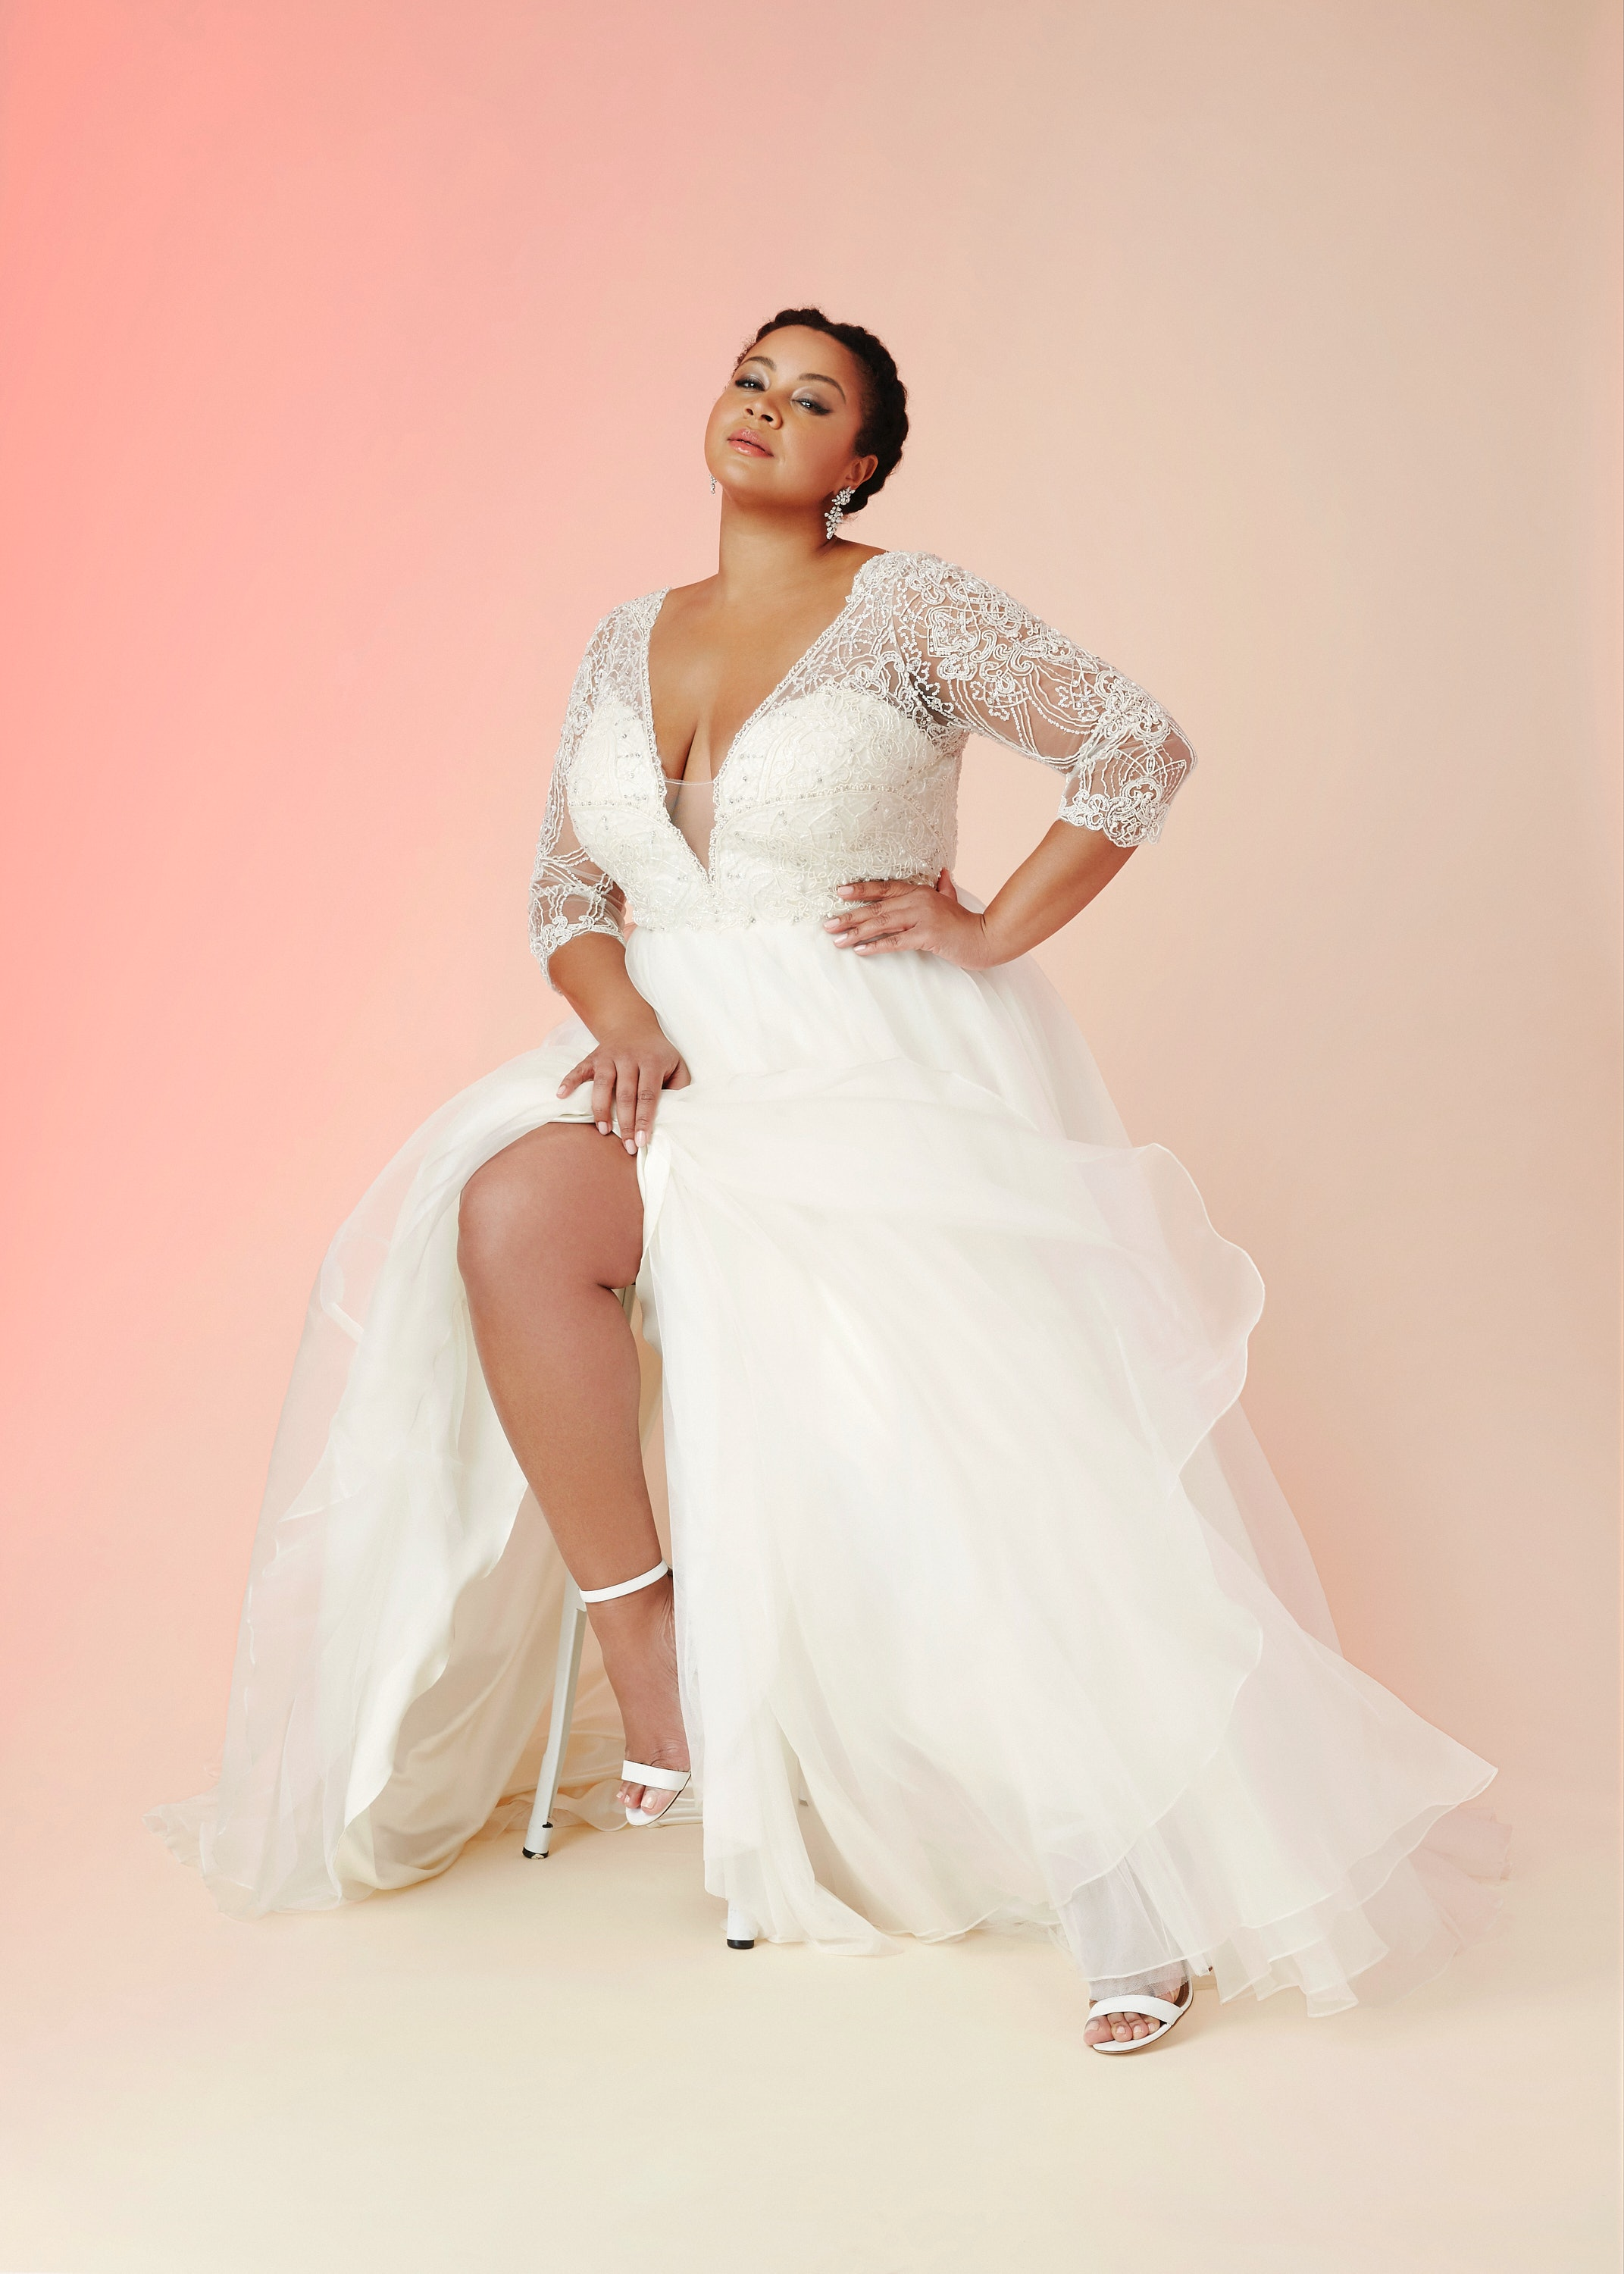 12 Of The Best Plus Size Wedding Gowns You Can Buy Right Now ...